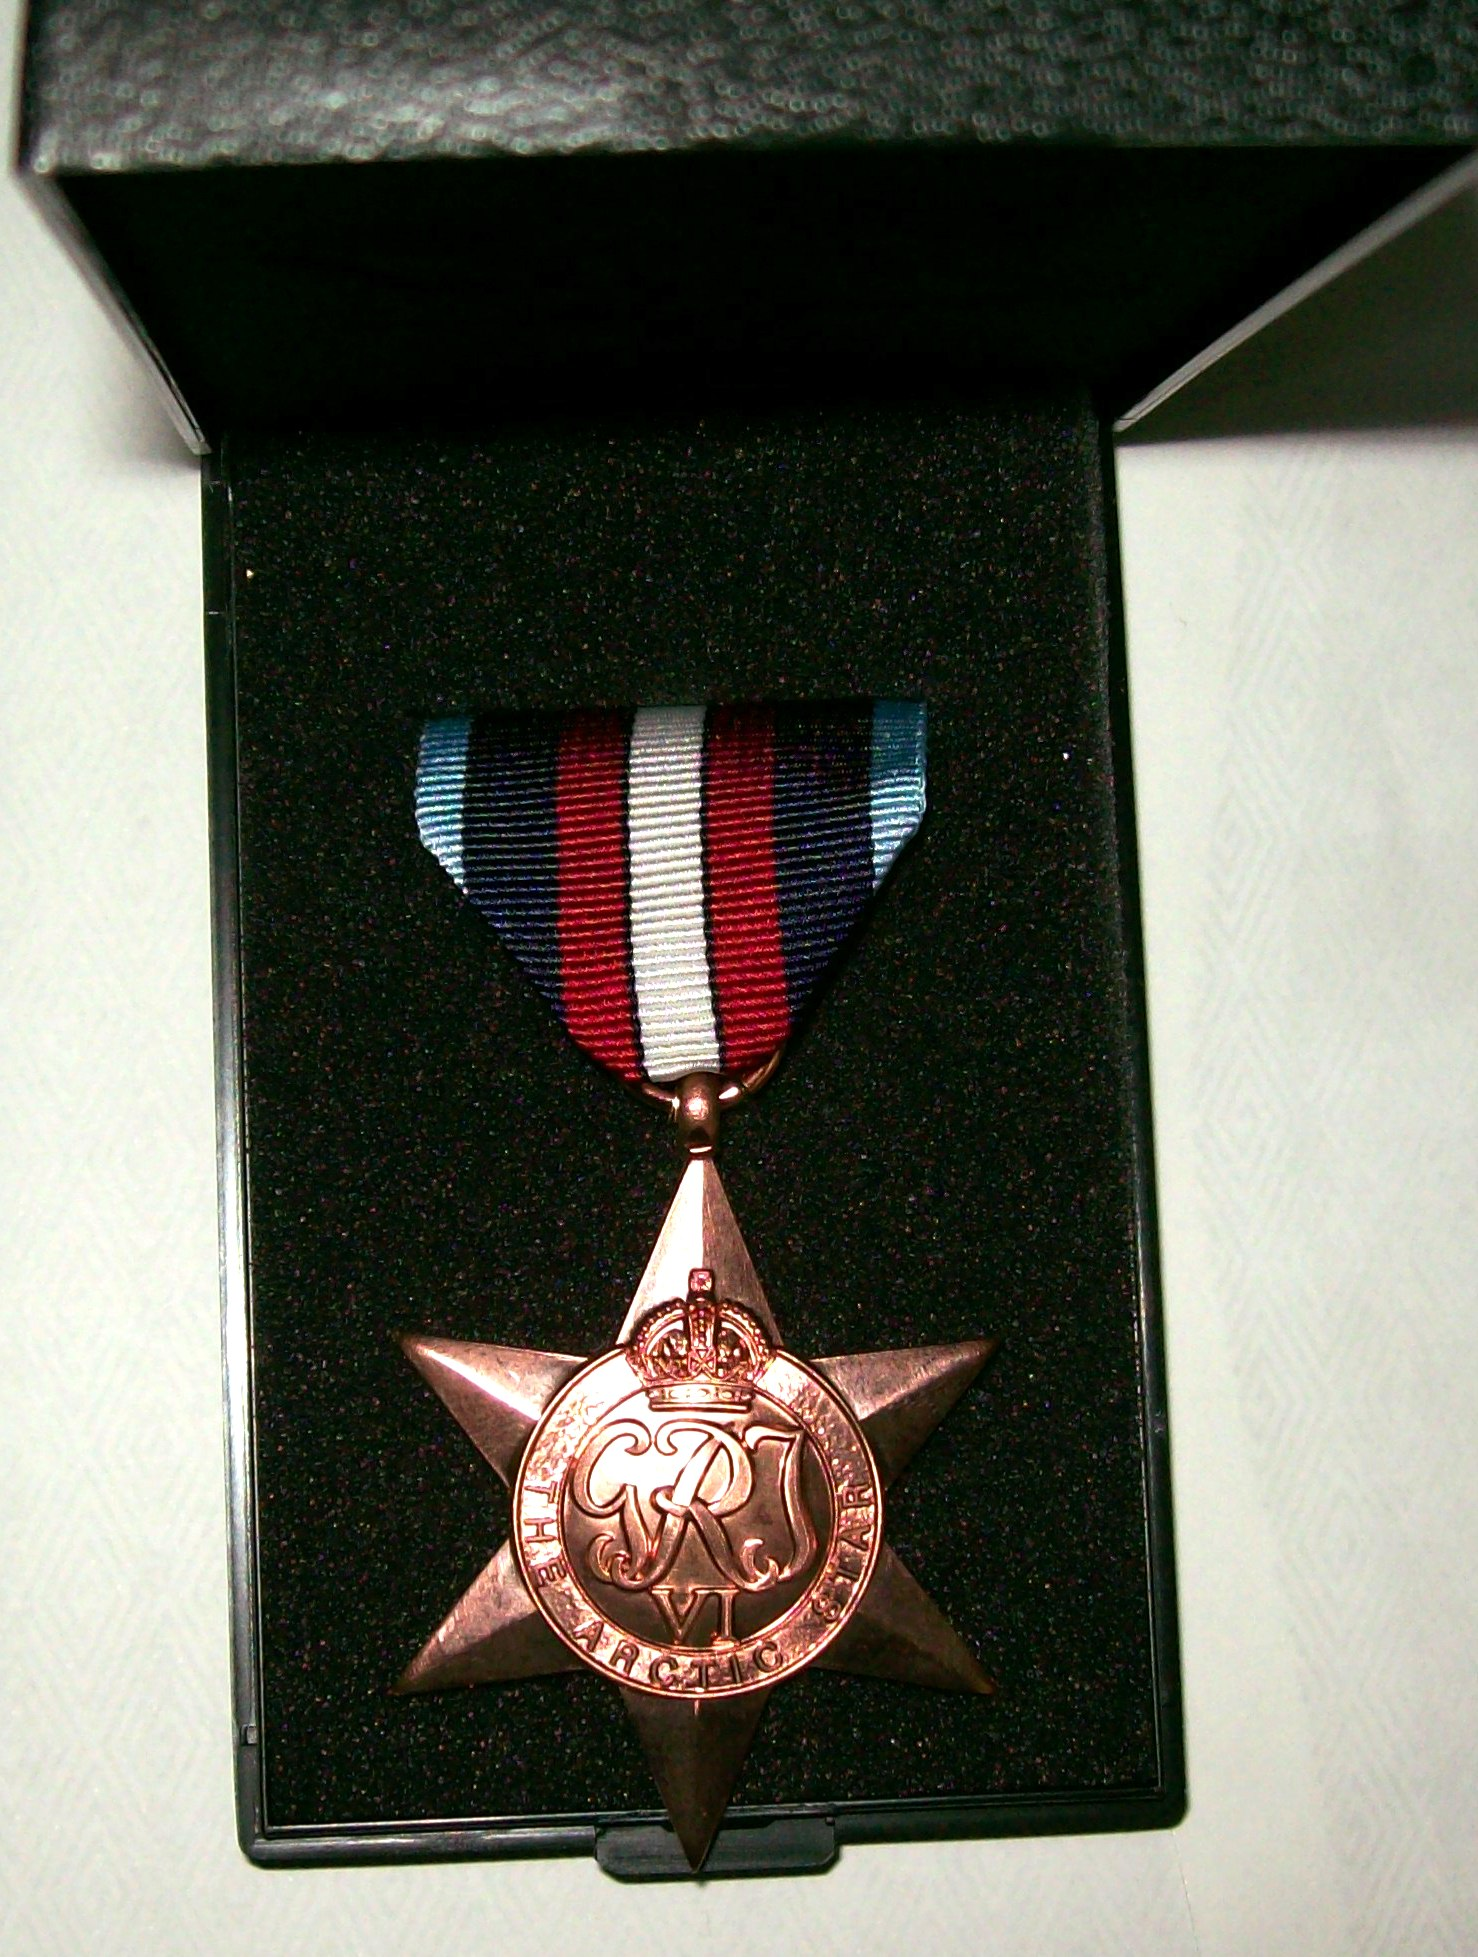 Awarded to Brian's Father